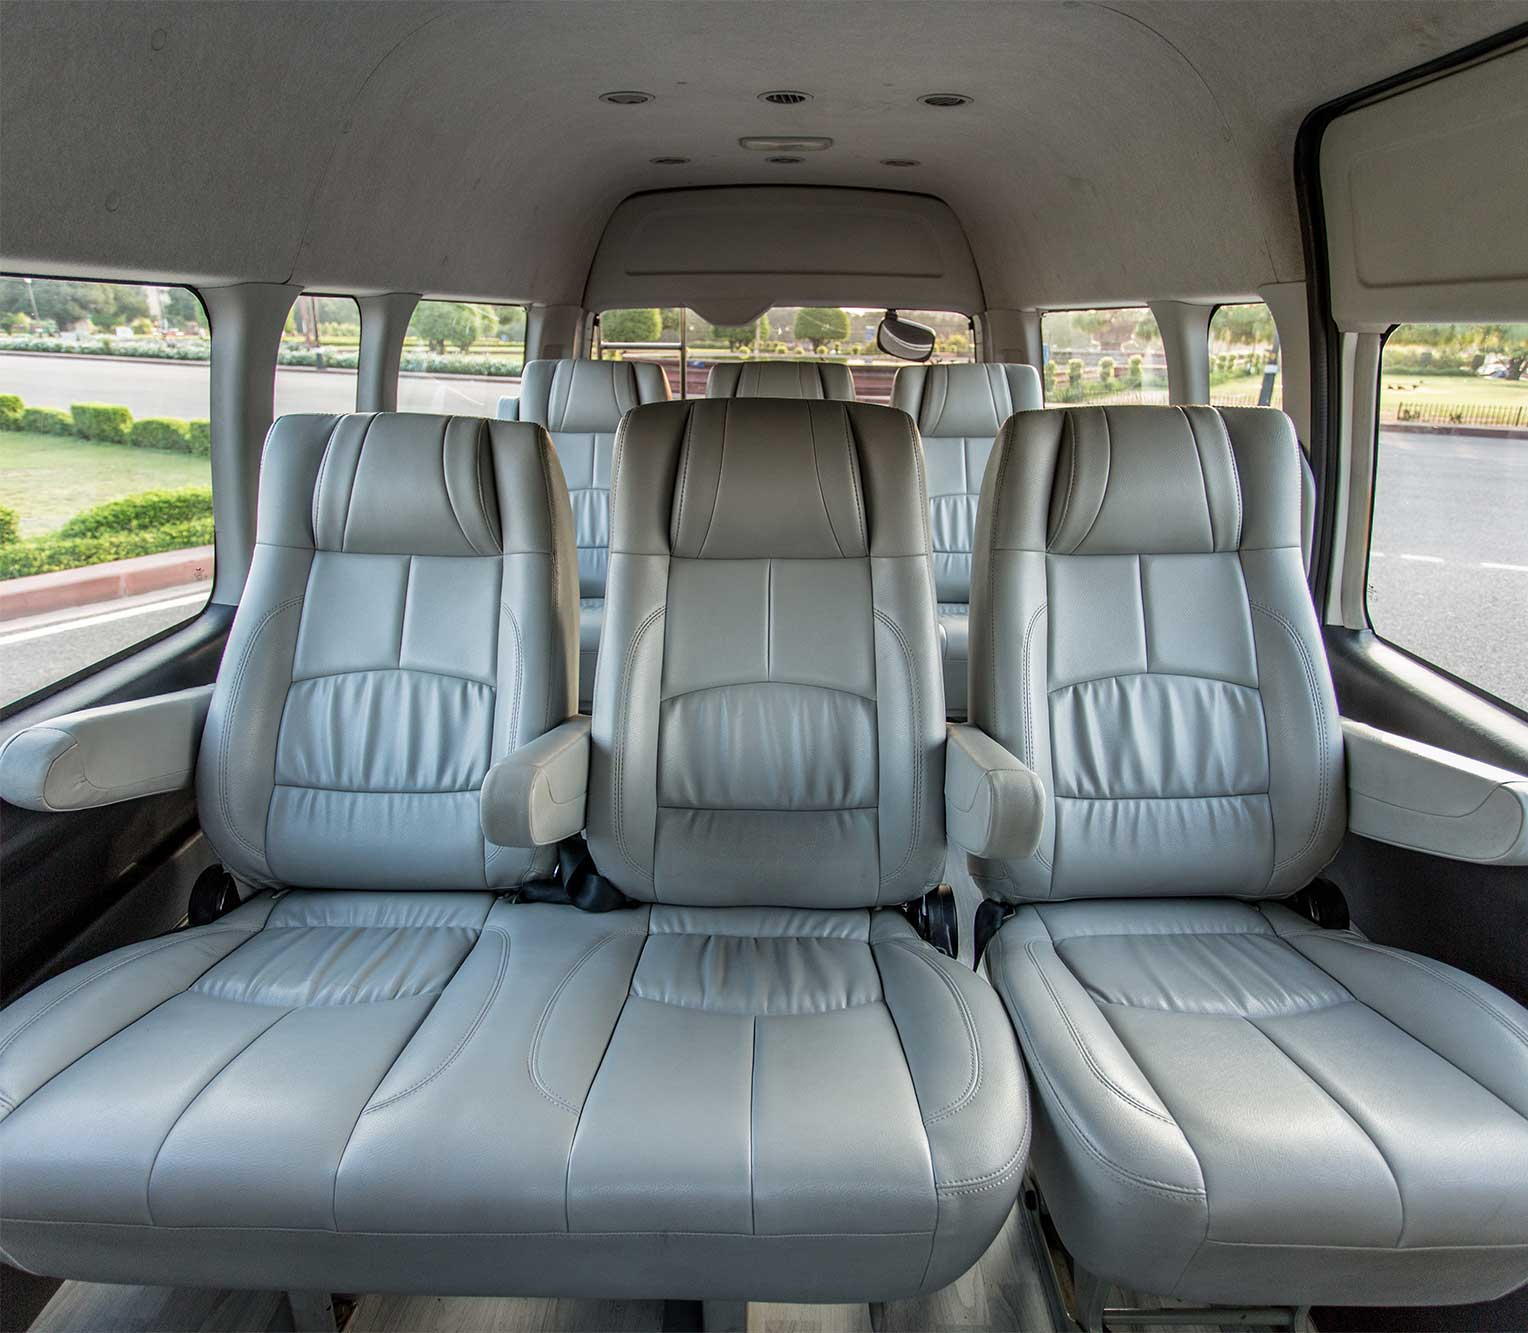 toyota hiace commuter for rent in delhi toyota hiace rental service. Black Bedroom Furniture Sets. Home Design Ideas